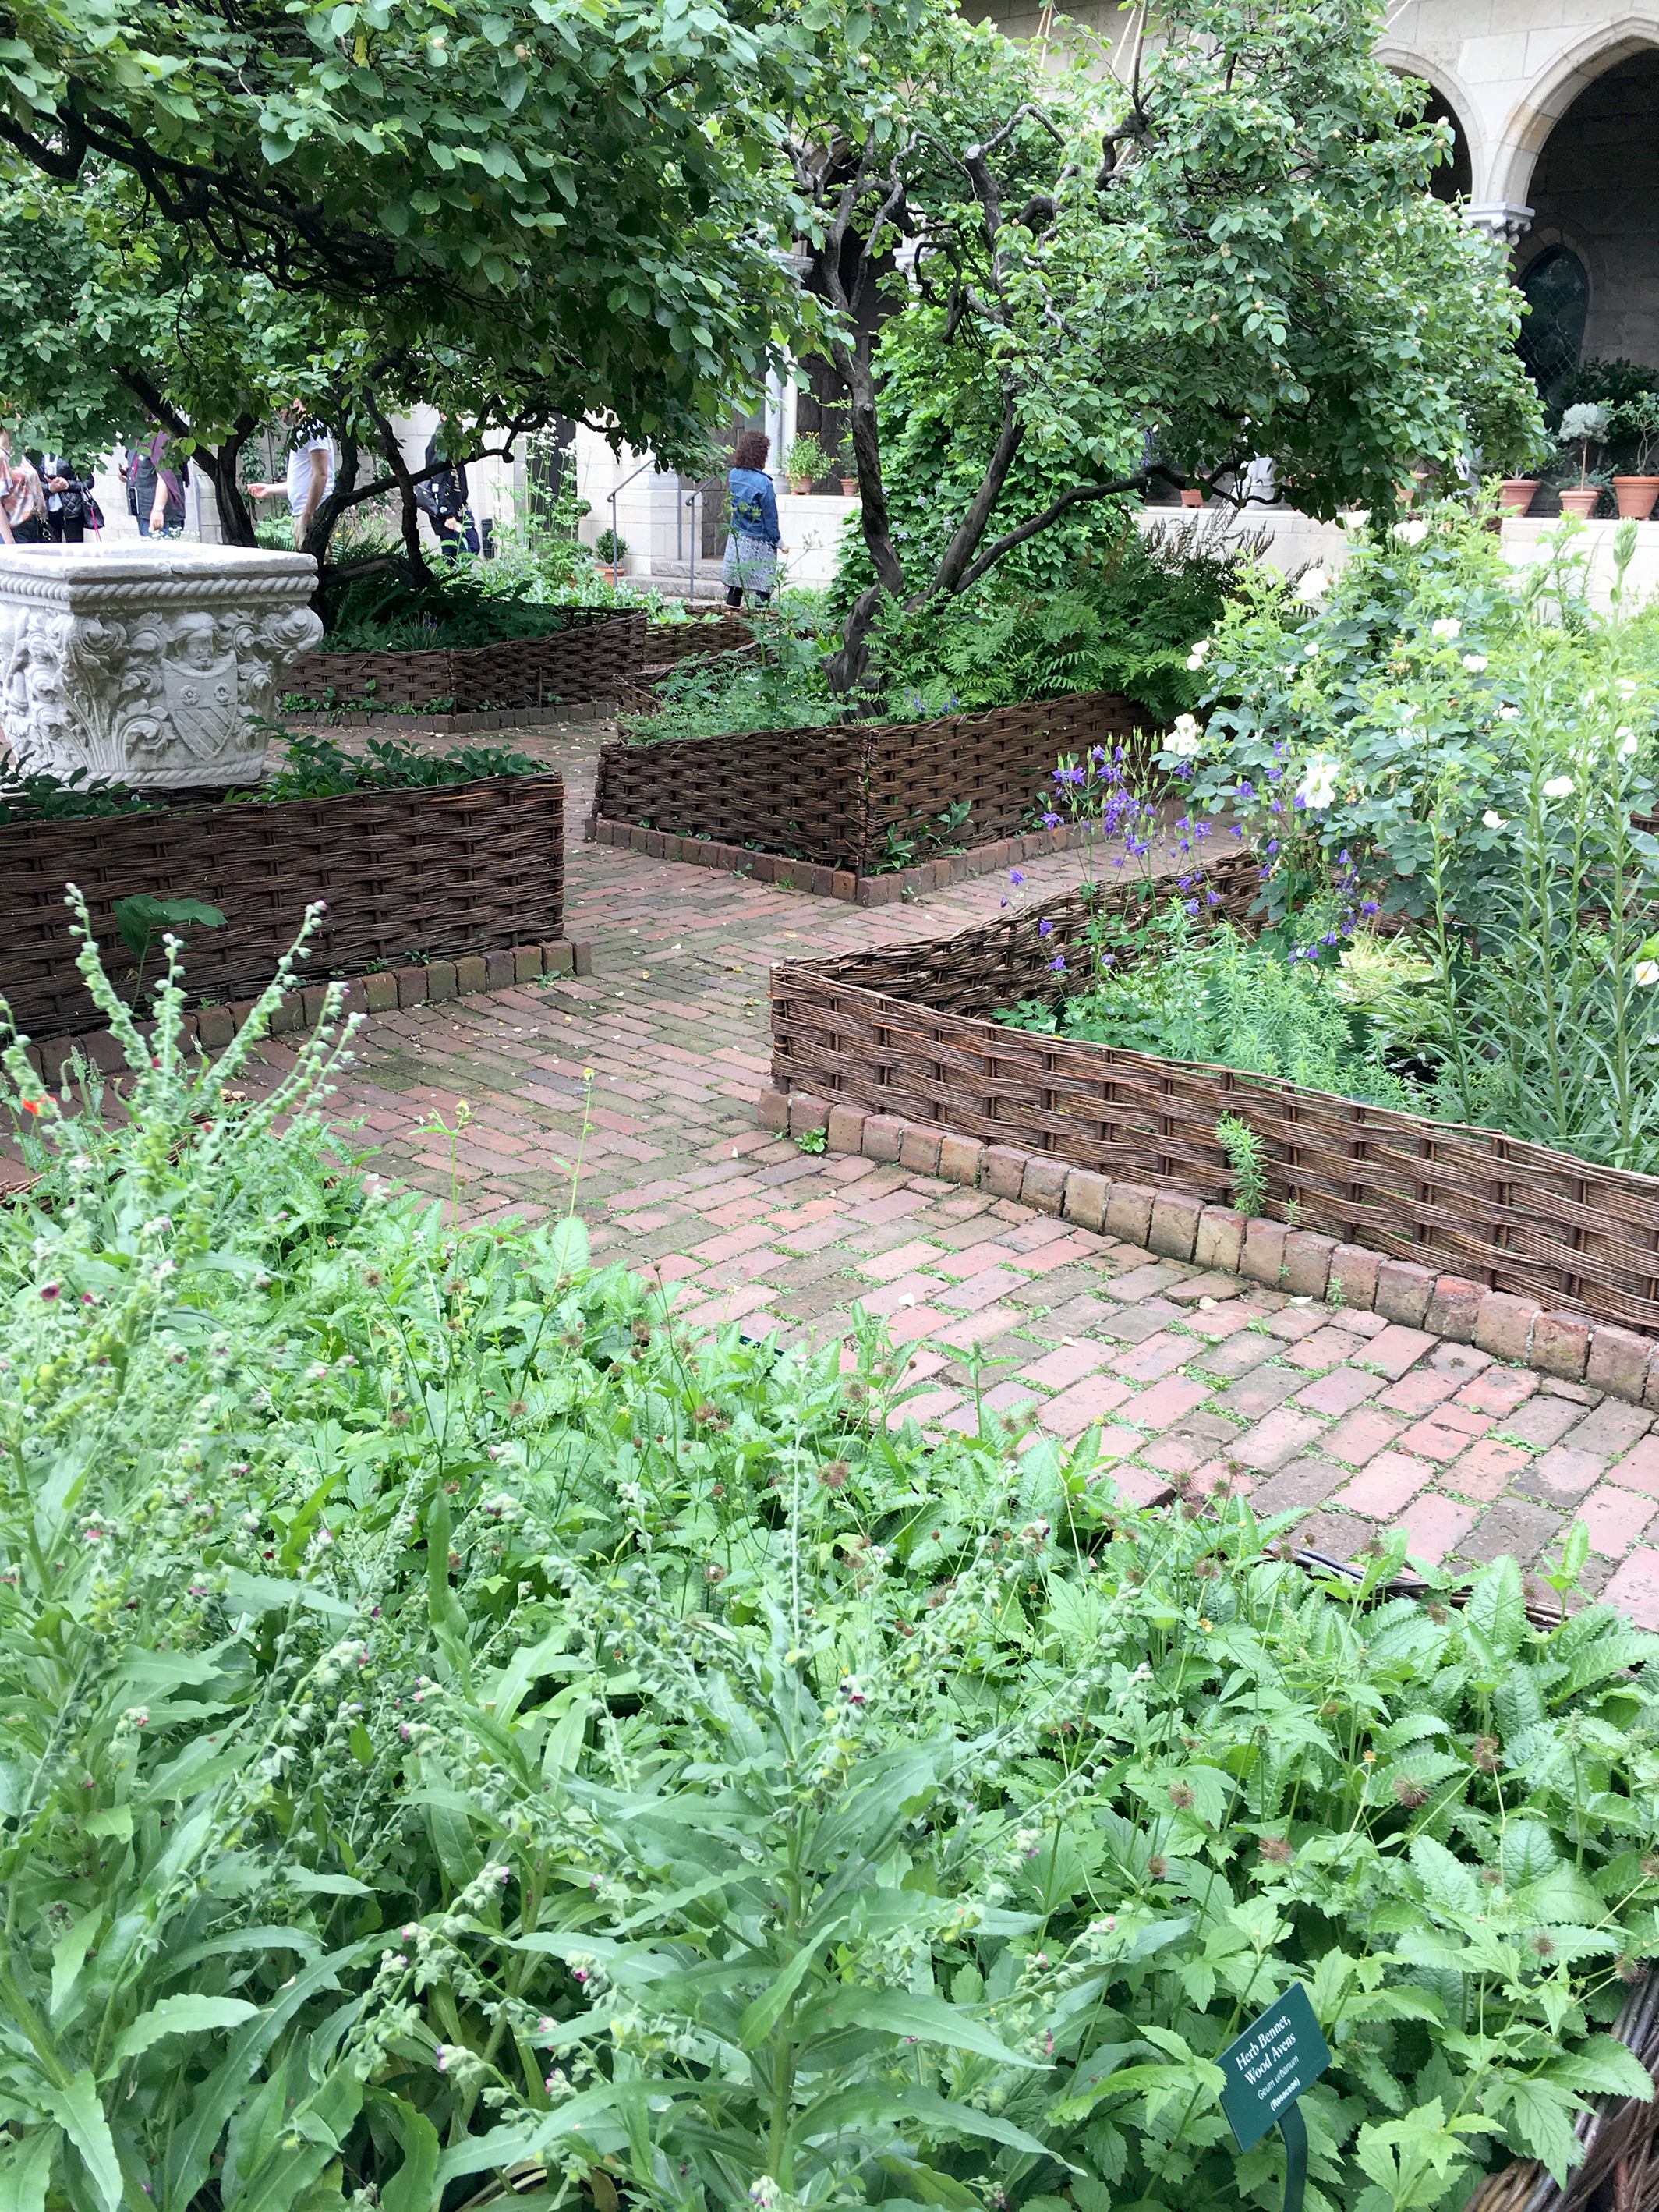 The Bonnefont Cloister Herb Garden